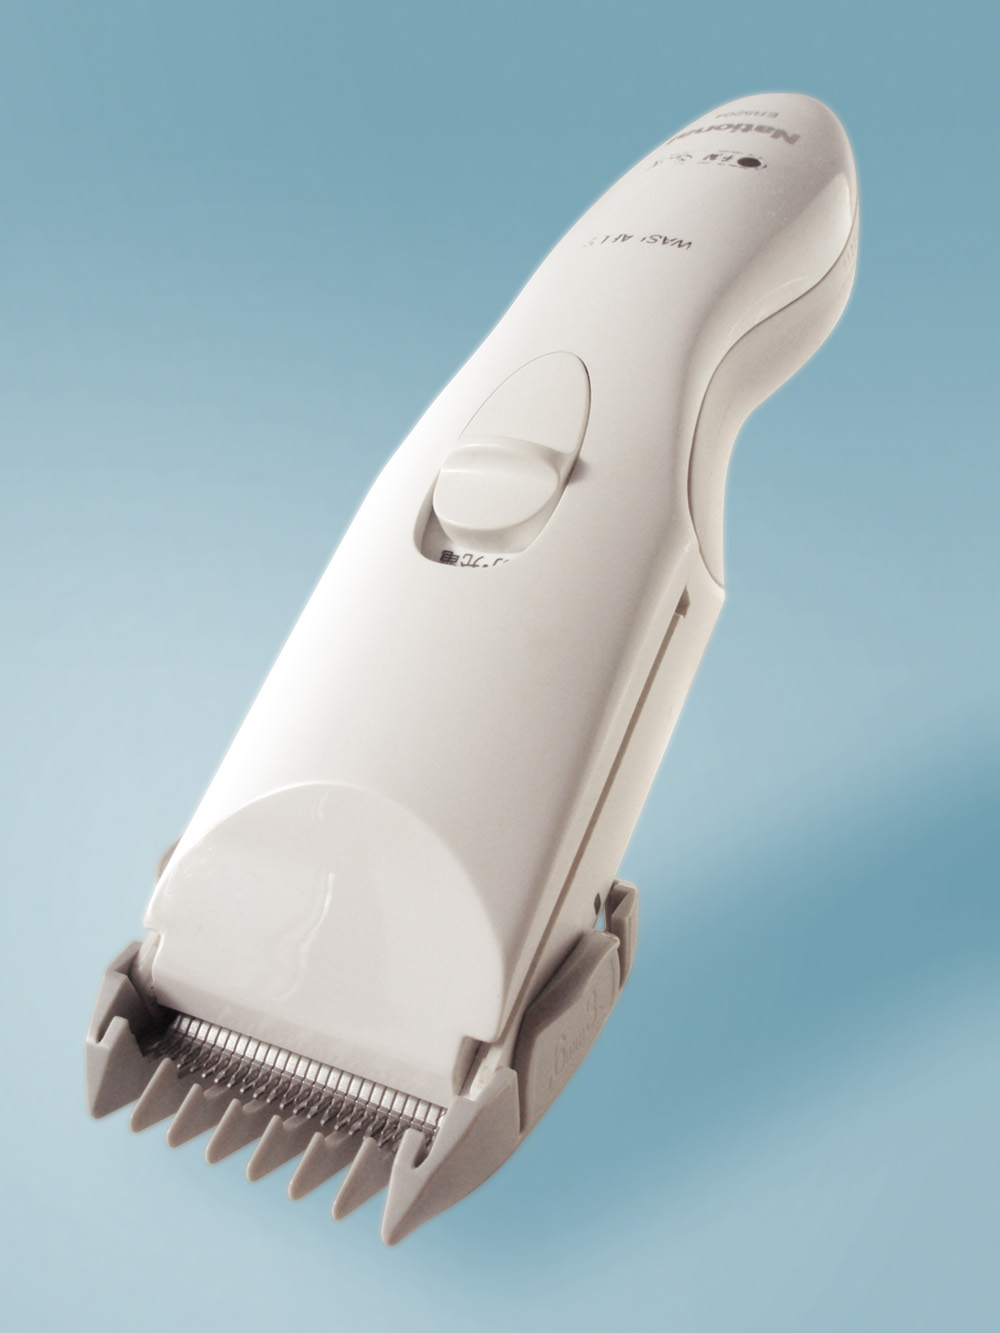 Top 10 Best Shaver For Pubic Area Female Reviews Buying